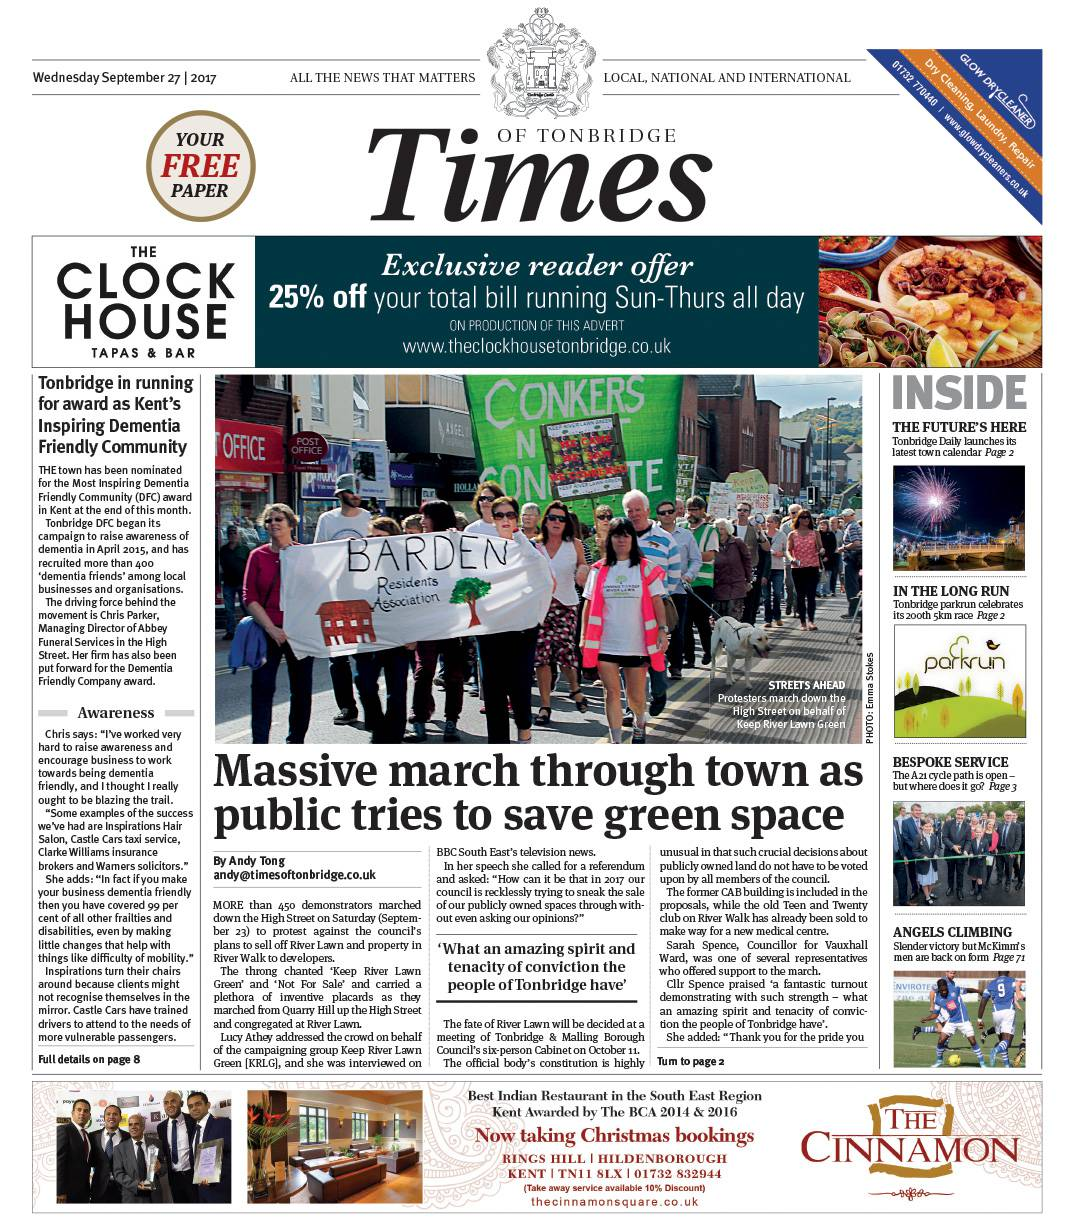 Read the Times of Tonbridge 27th September 2017